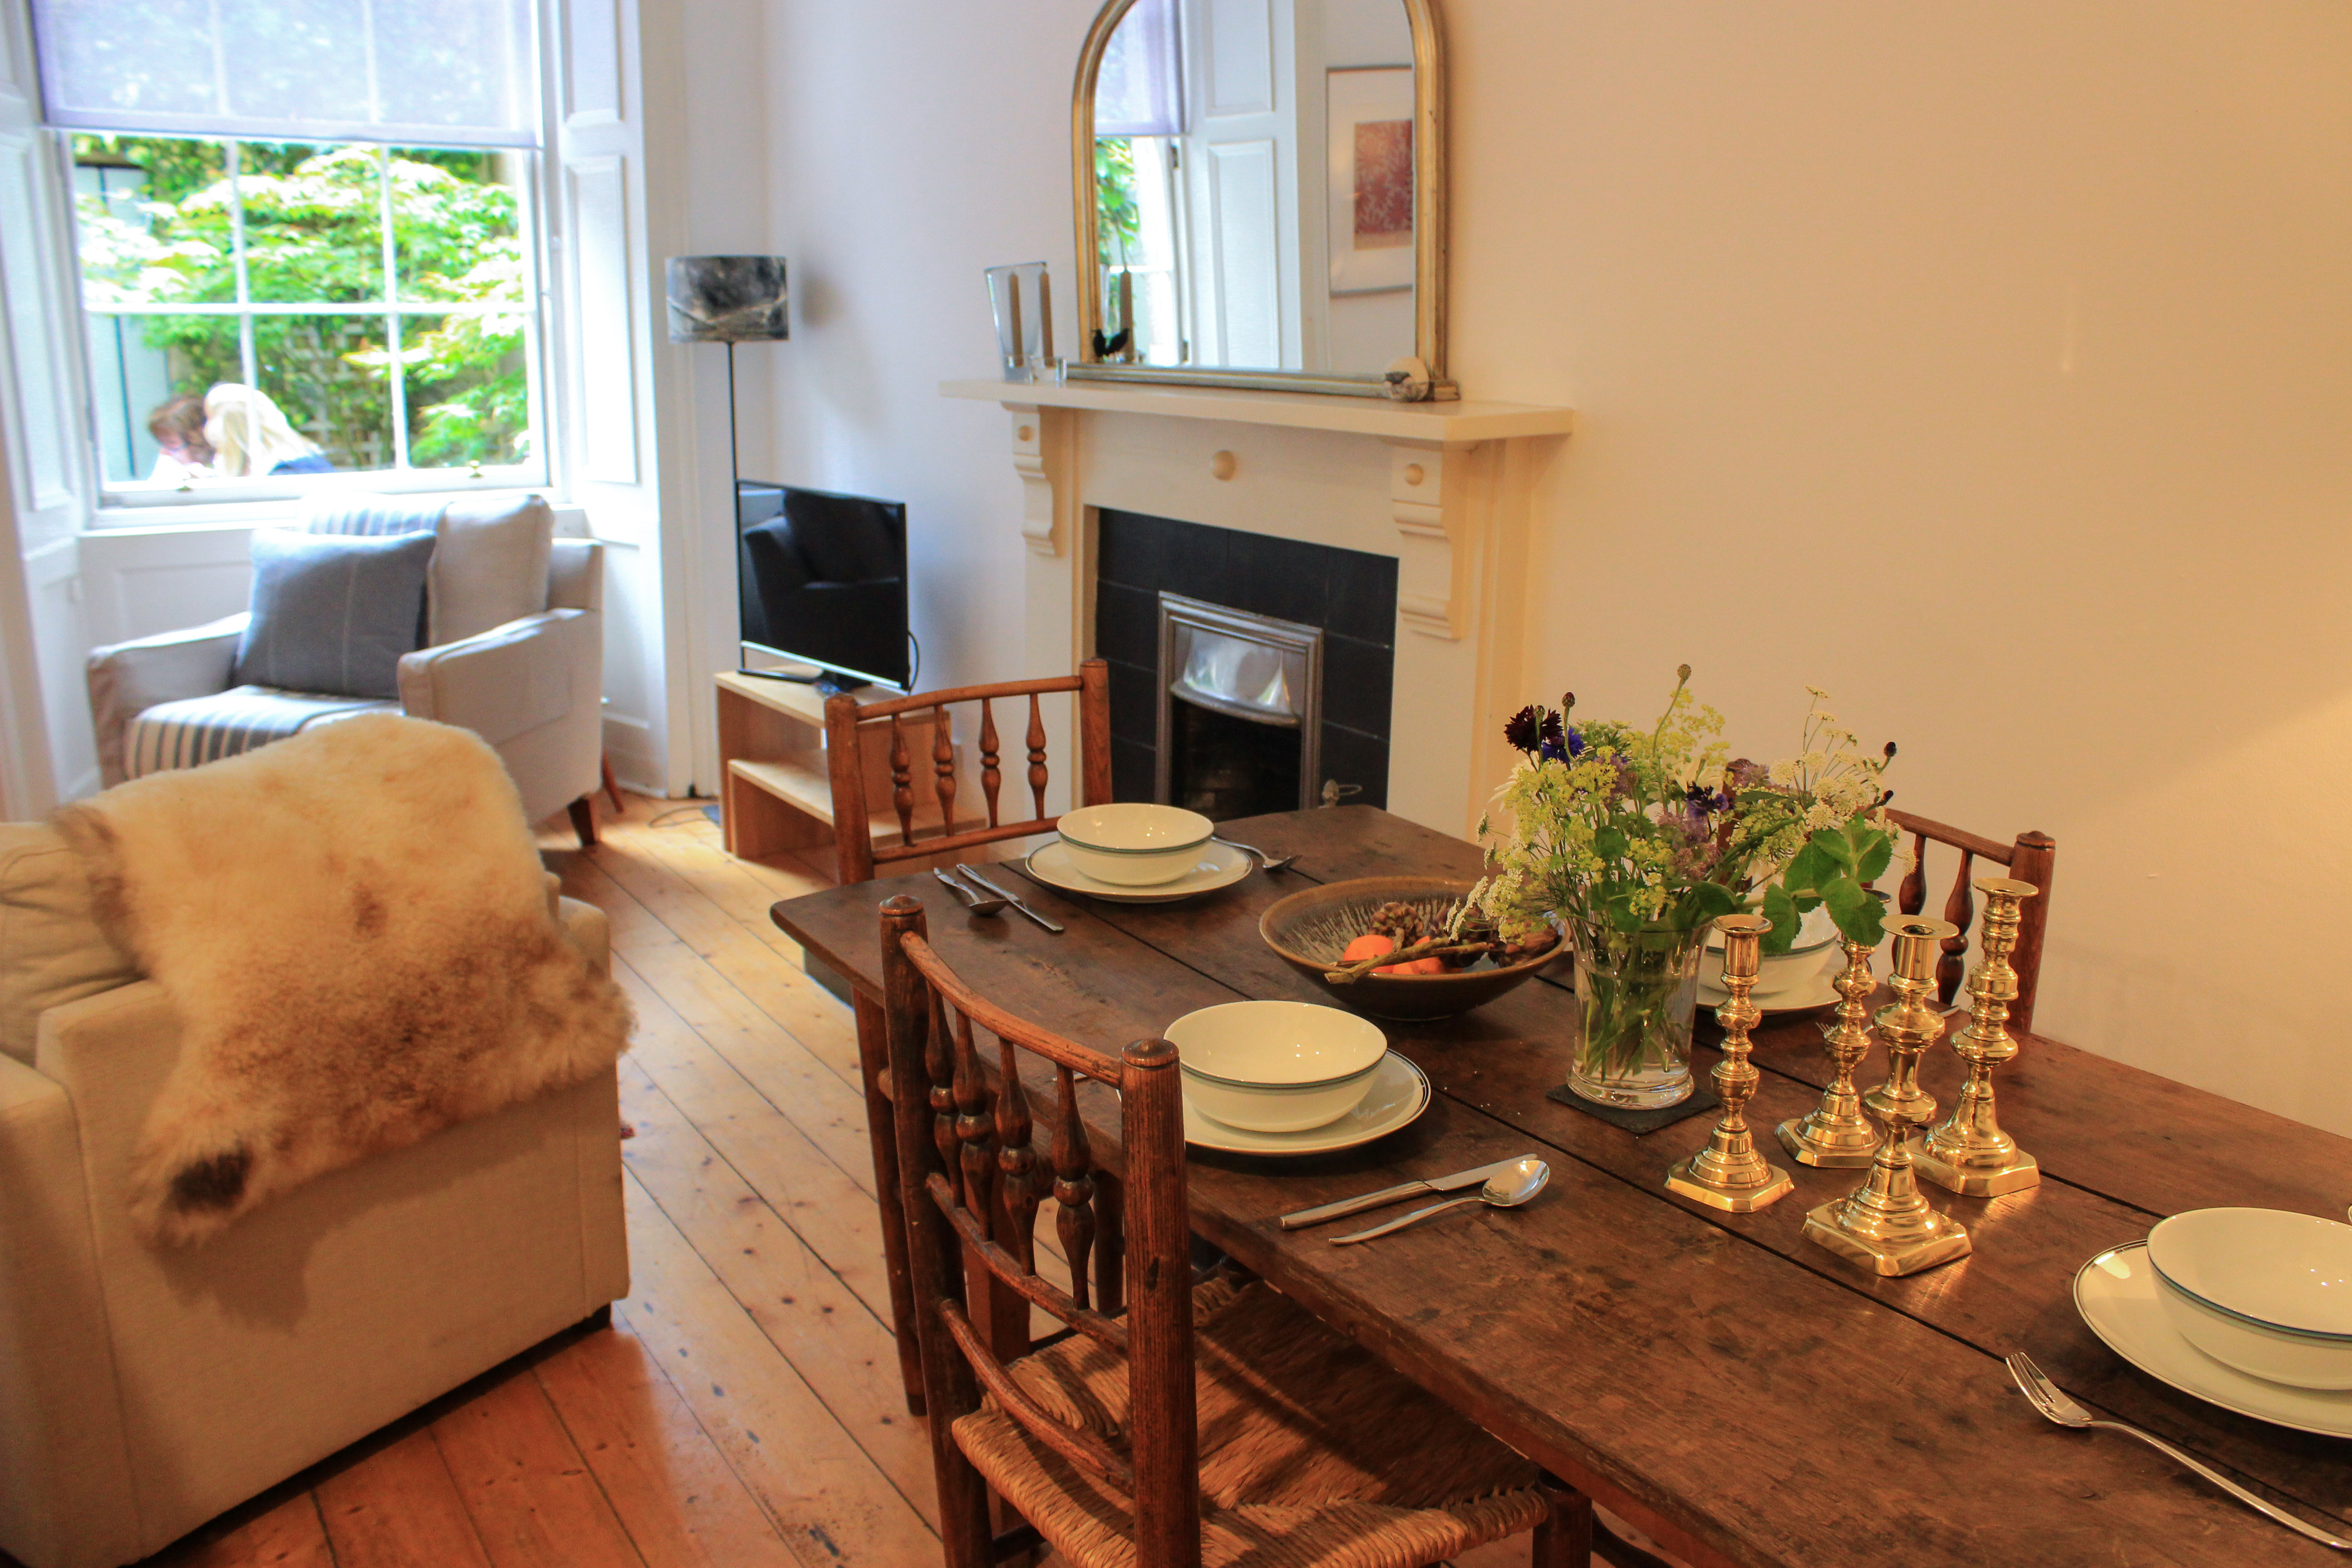 Our Homes from Home - Carlton Street, Stockbridge